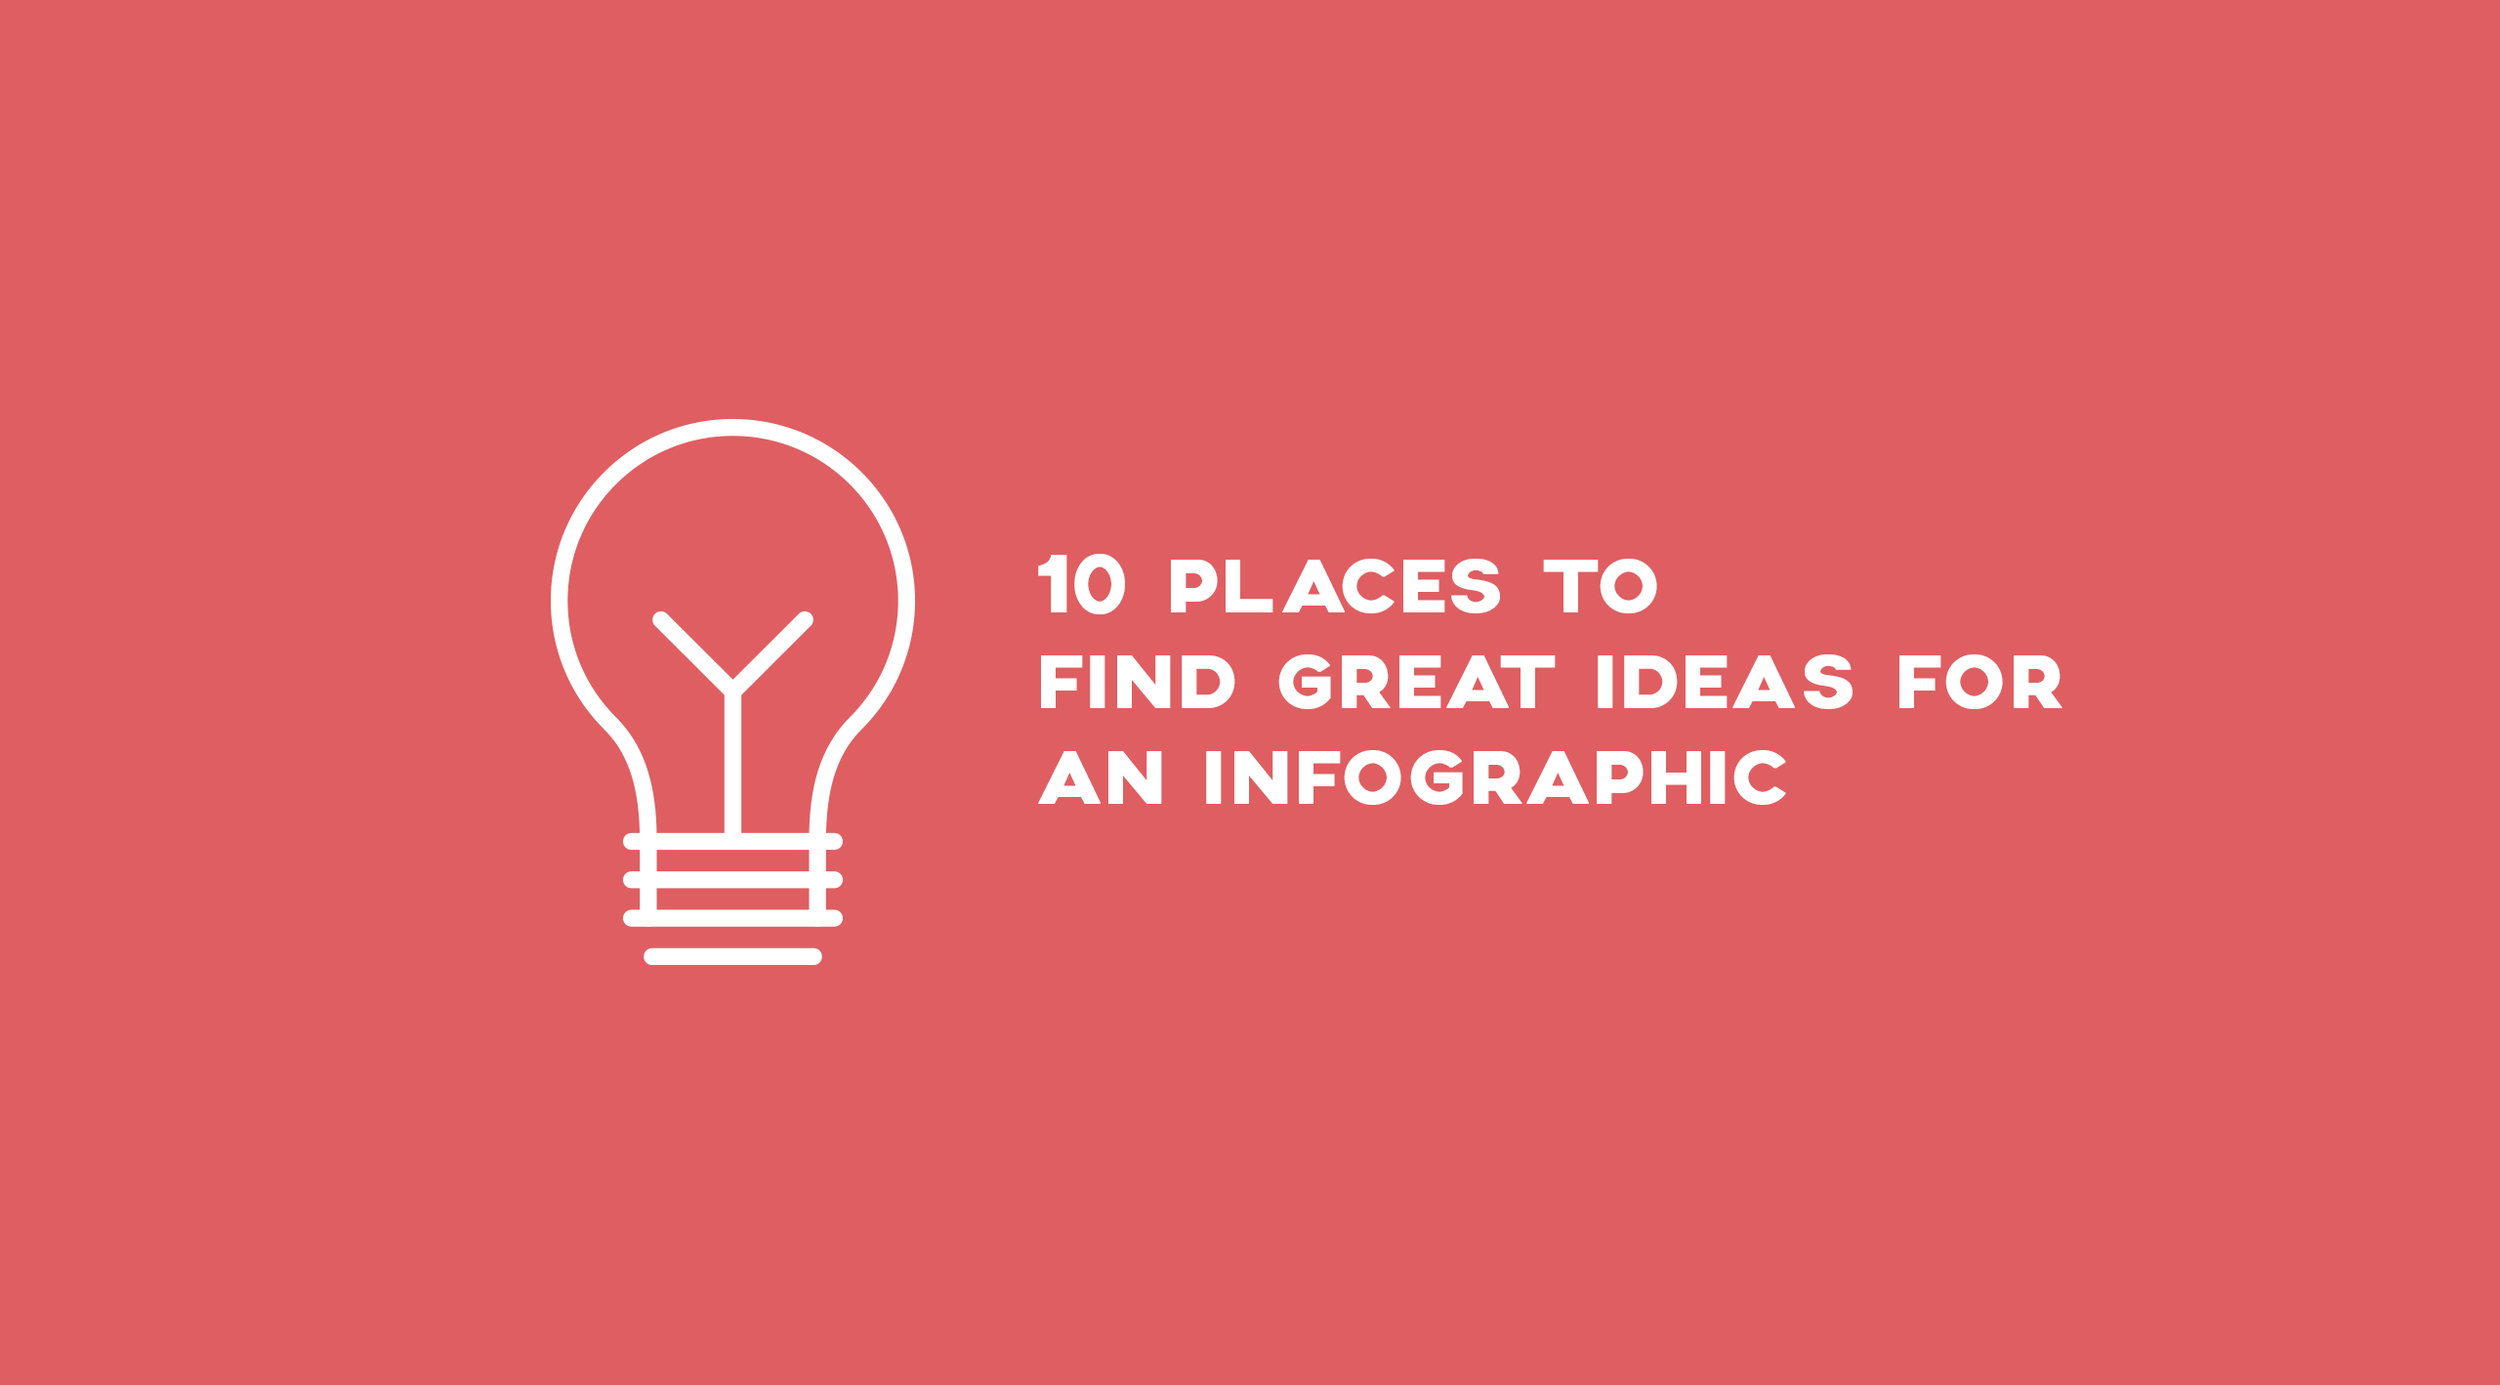 10 Places to Find Great Ideas for an Infographic.png